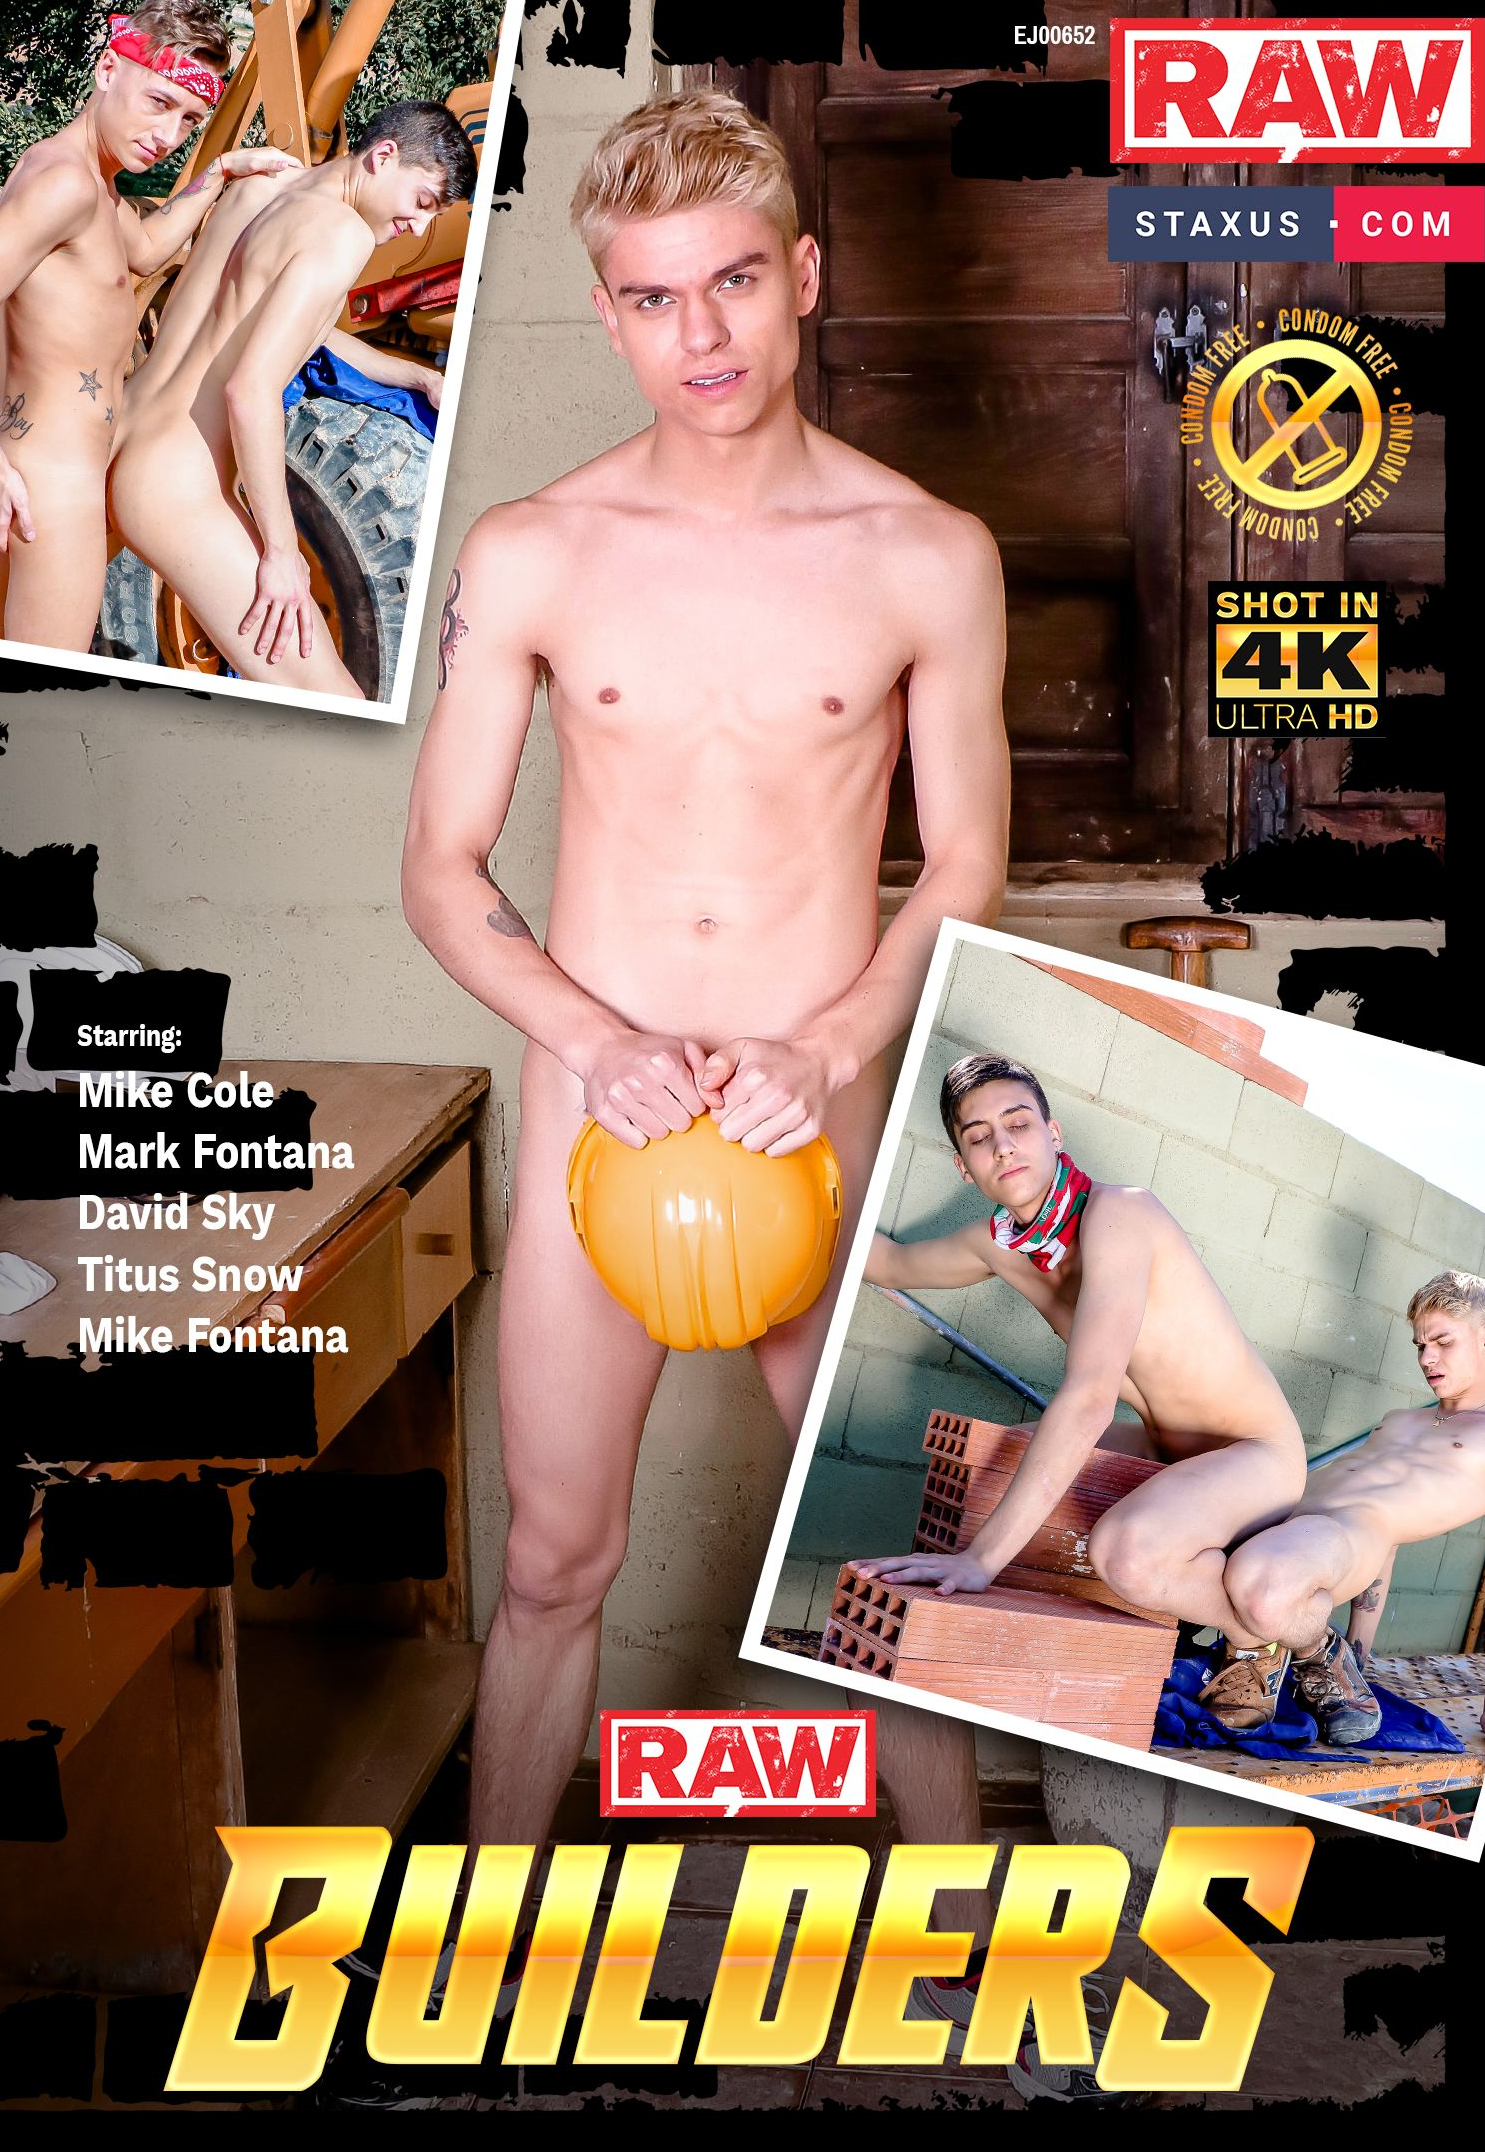 """Trailer for new movie """"Raw Builders""""!"""